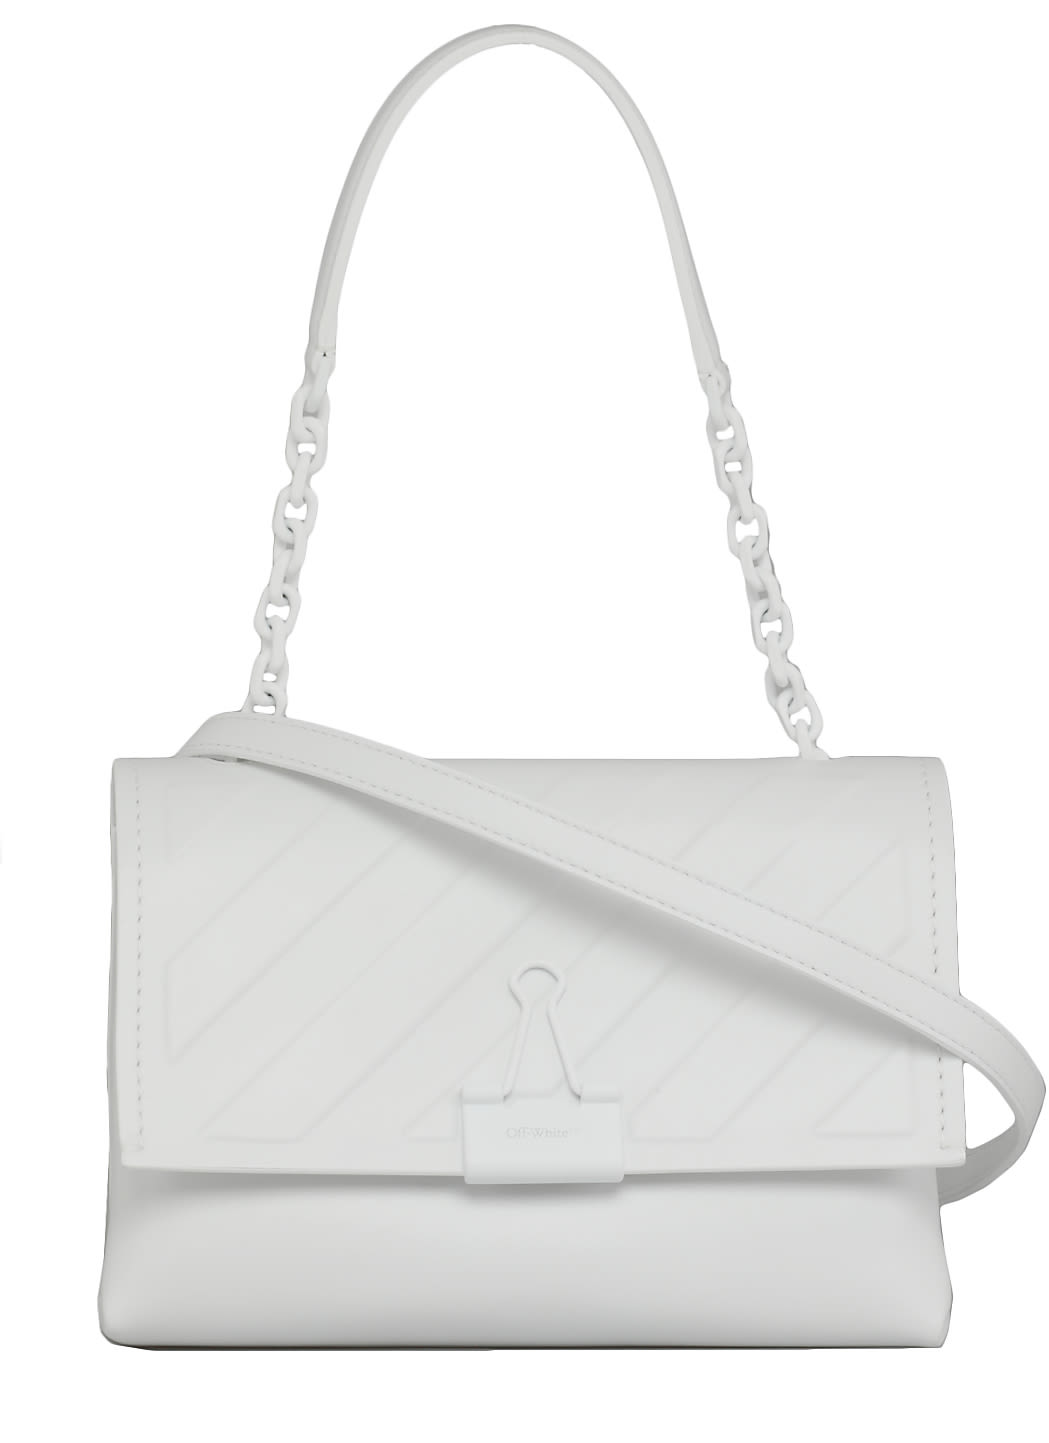 Off-White Leathers DIAG EMBOSSED BAG WITH CLIP